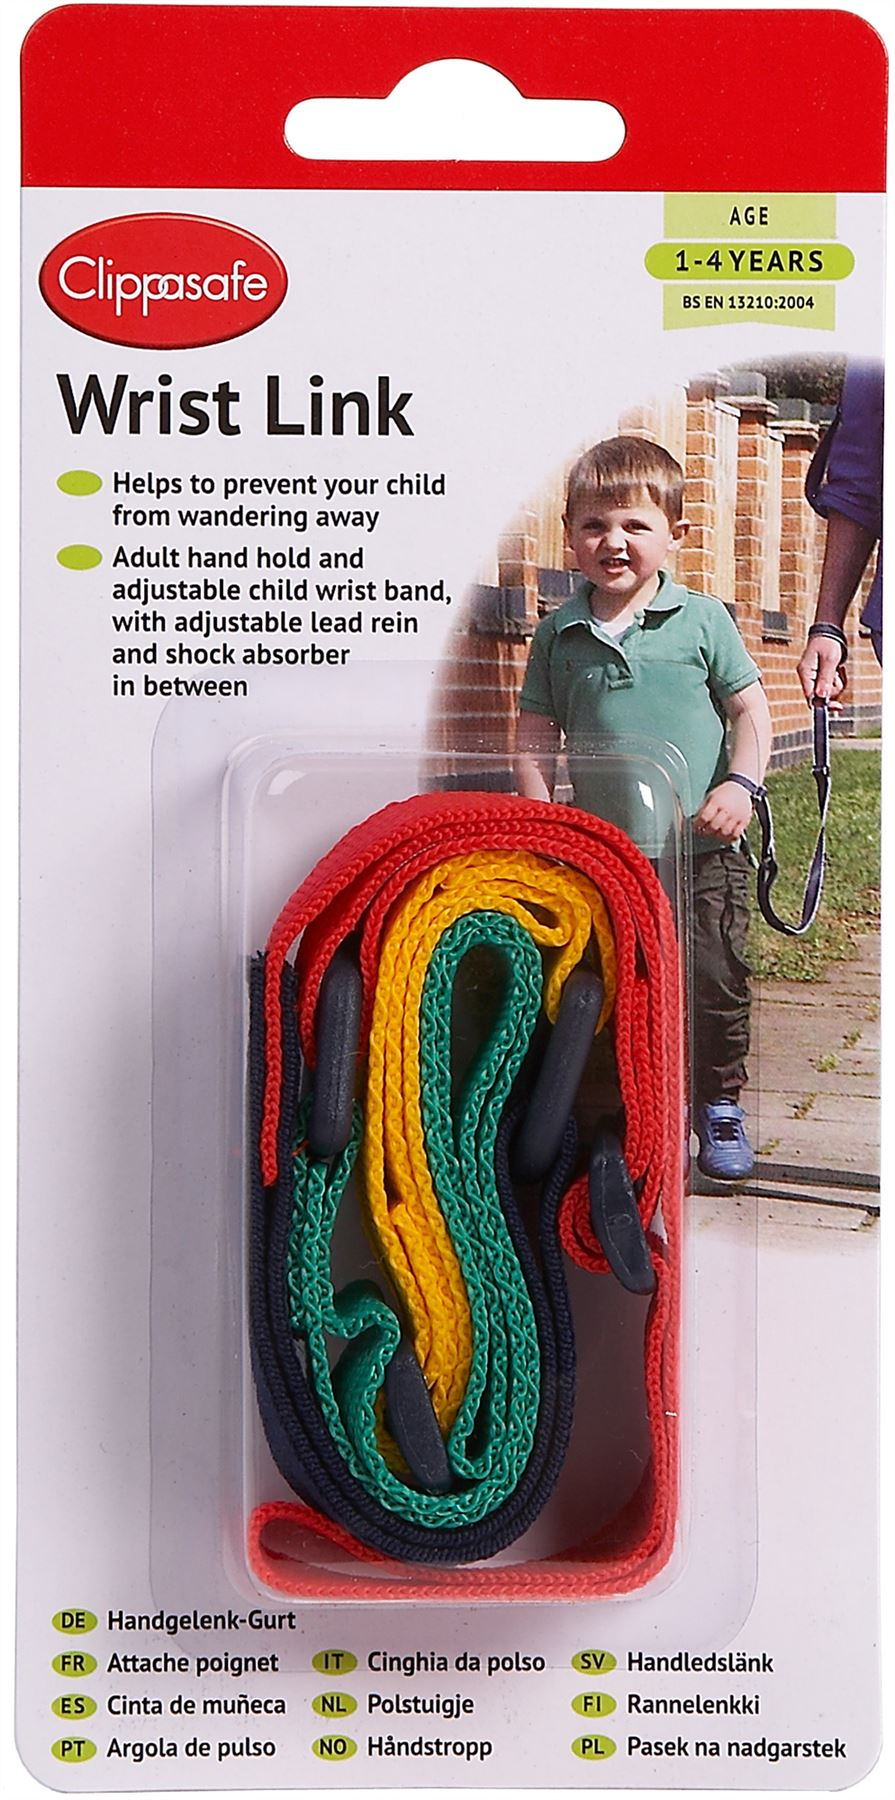 MULTI-COLOURED AGE 1-4 YEARS CLIPPASAFE WRIST LINK